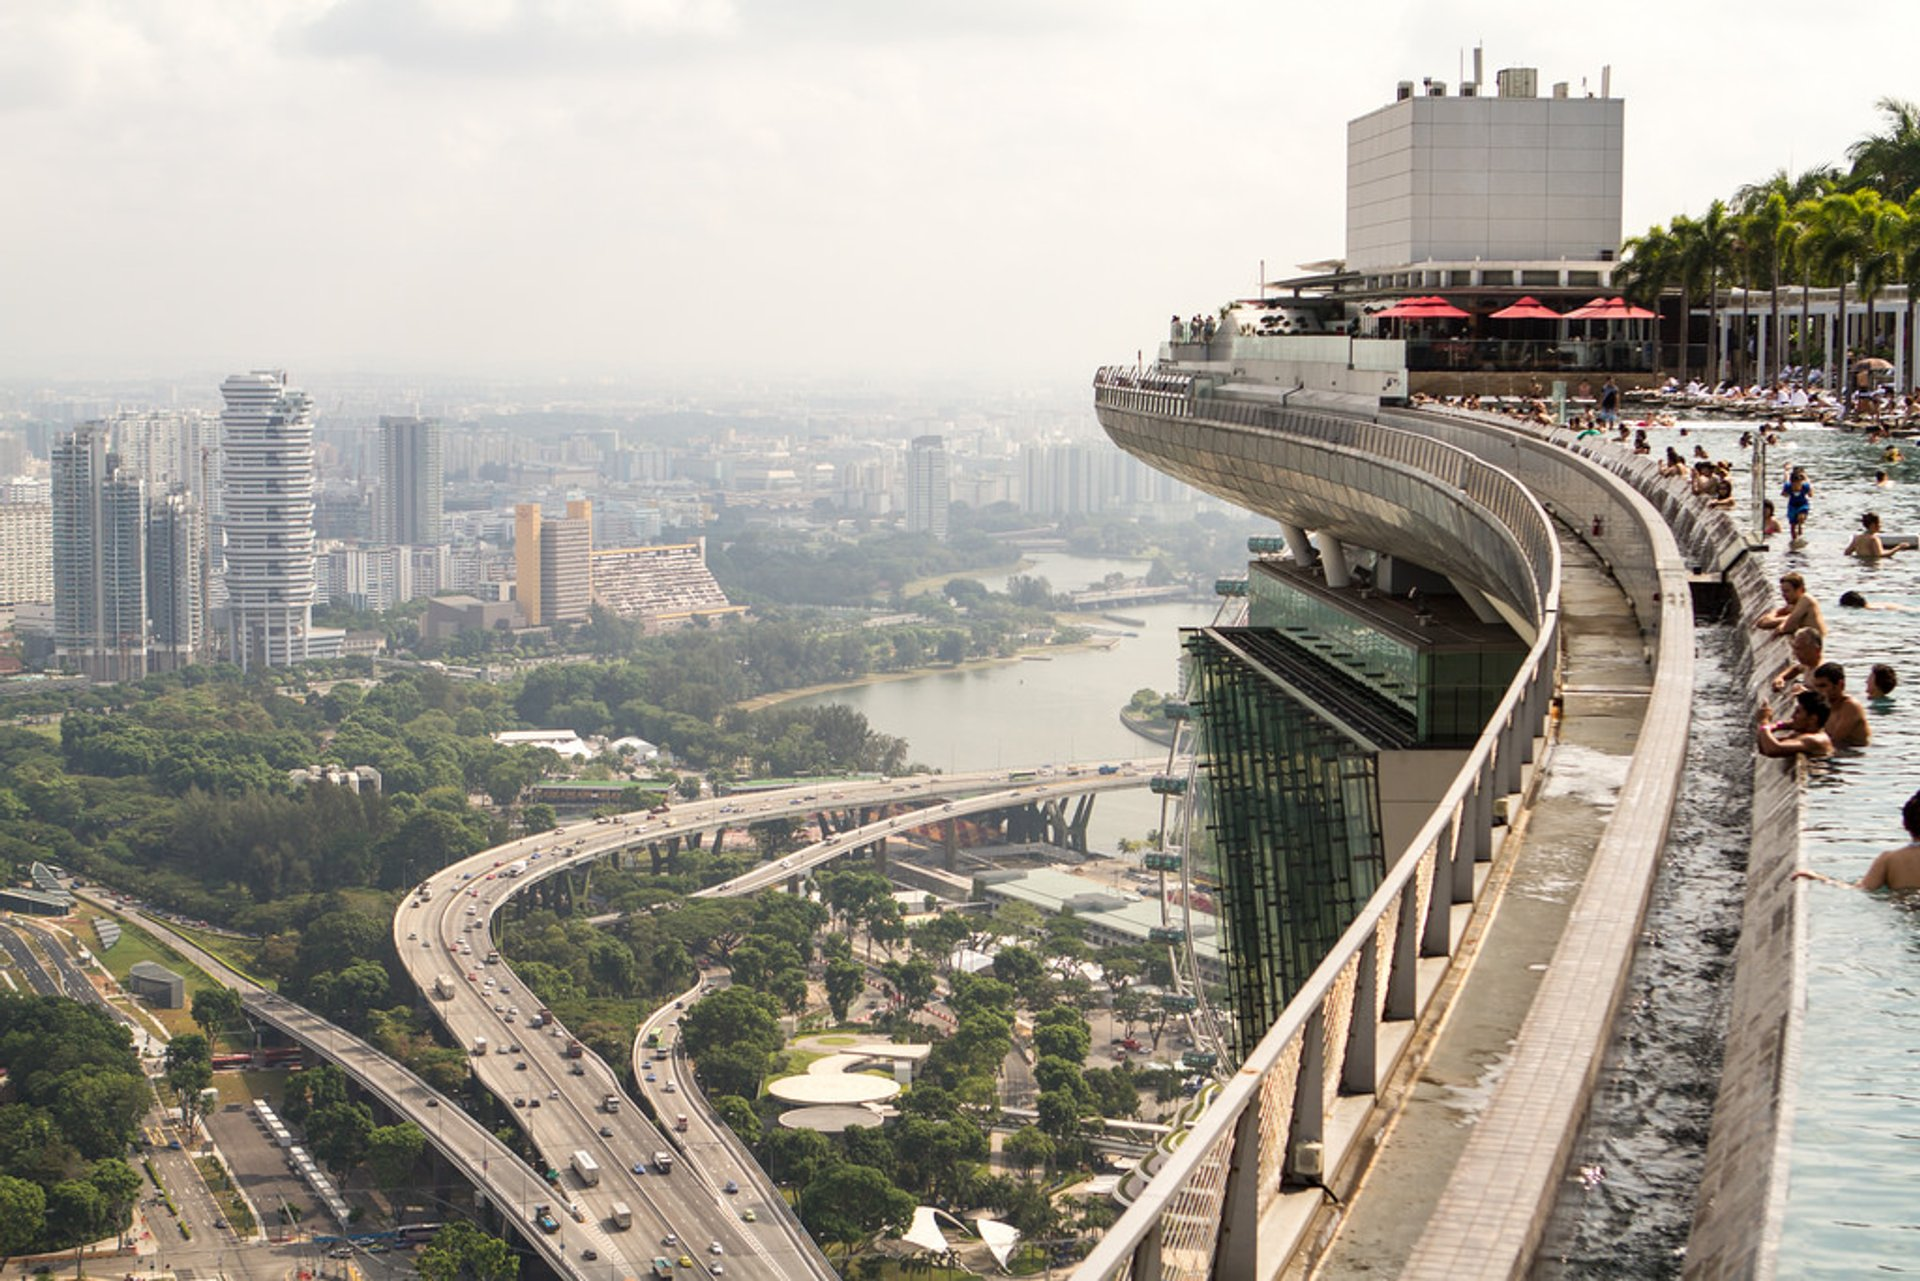 MBS Sky Park overlooking the Benjamin Sheares Bridge 2020